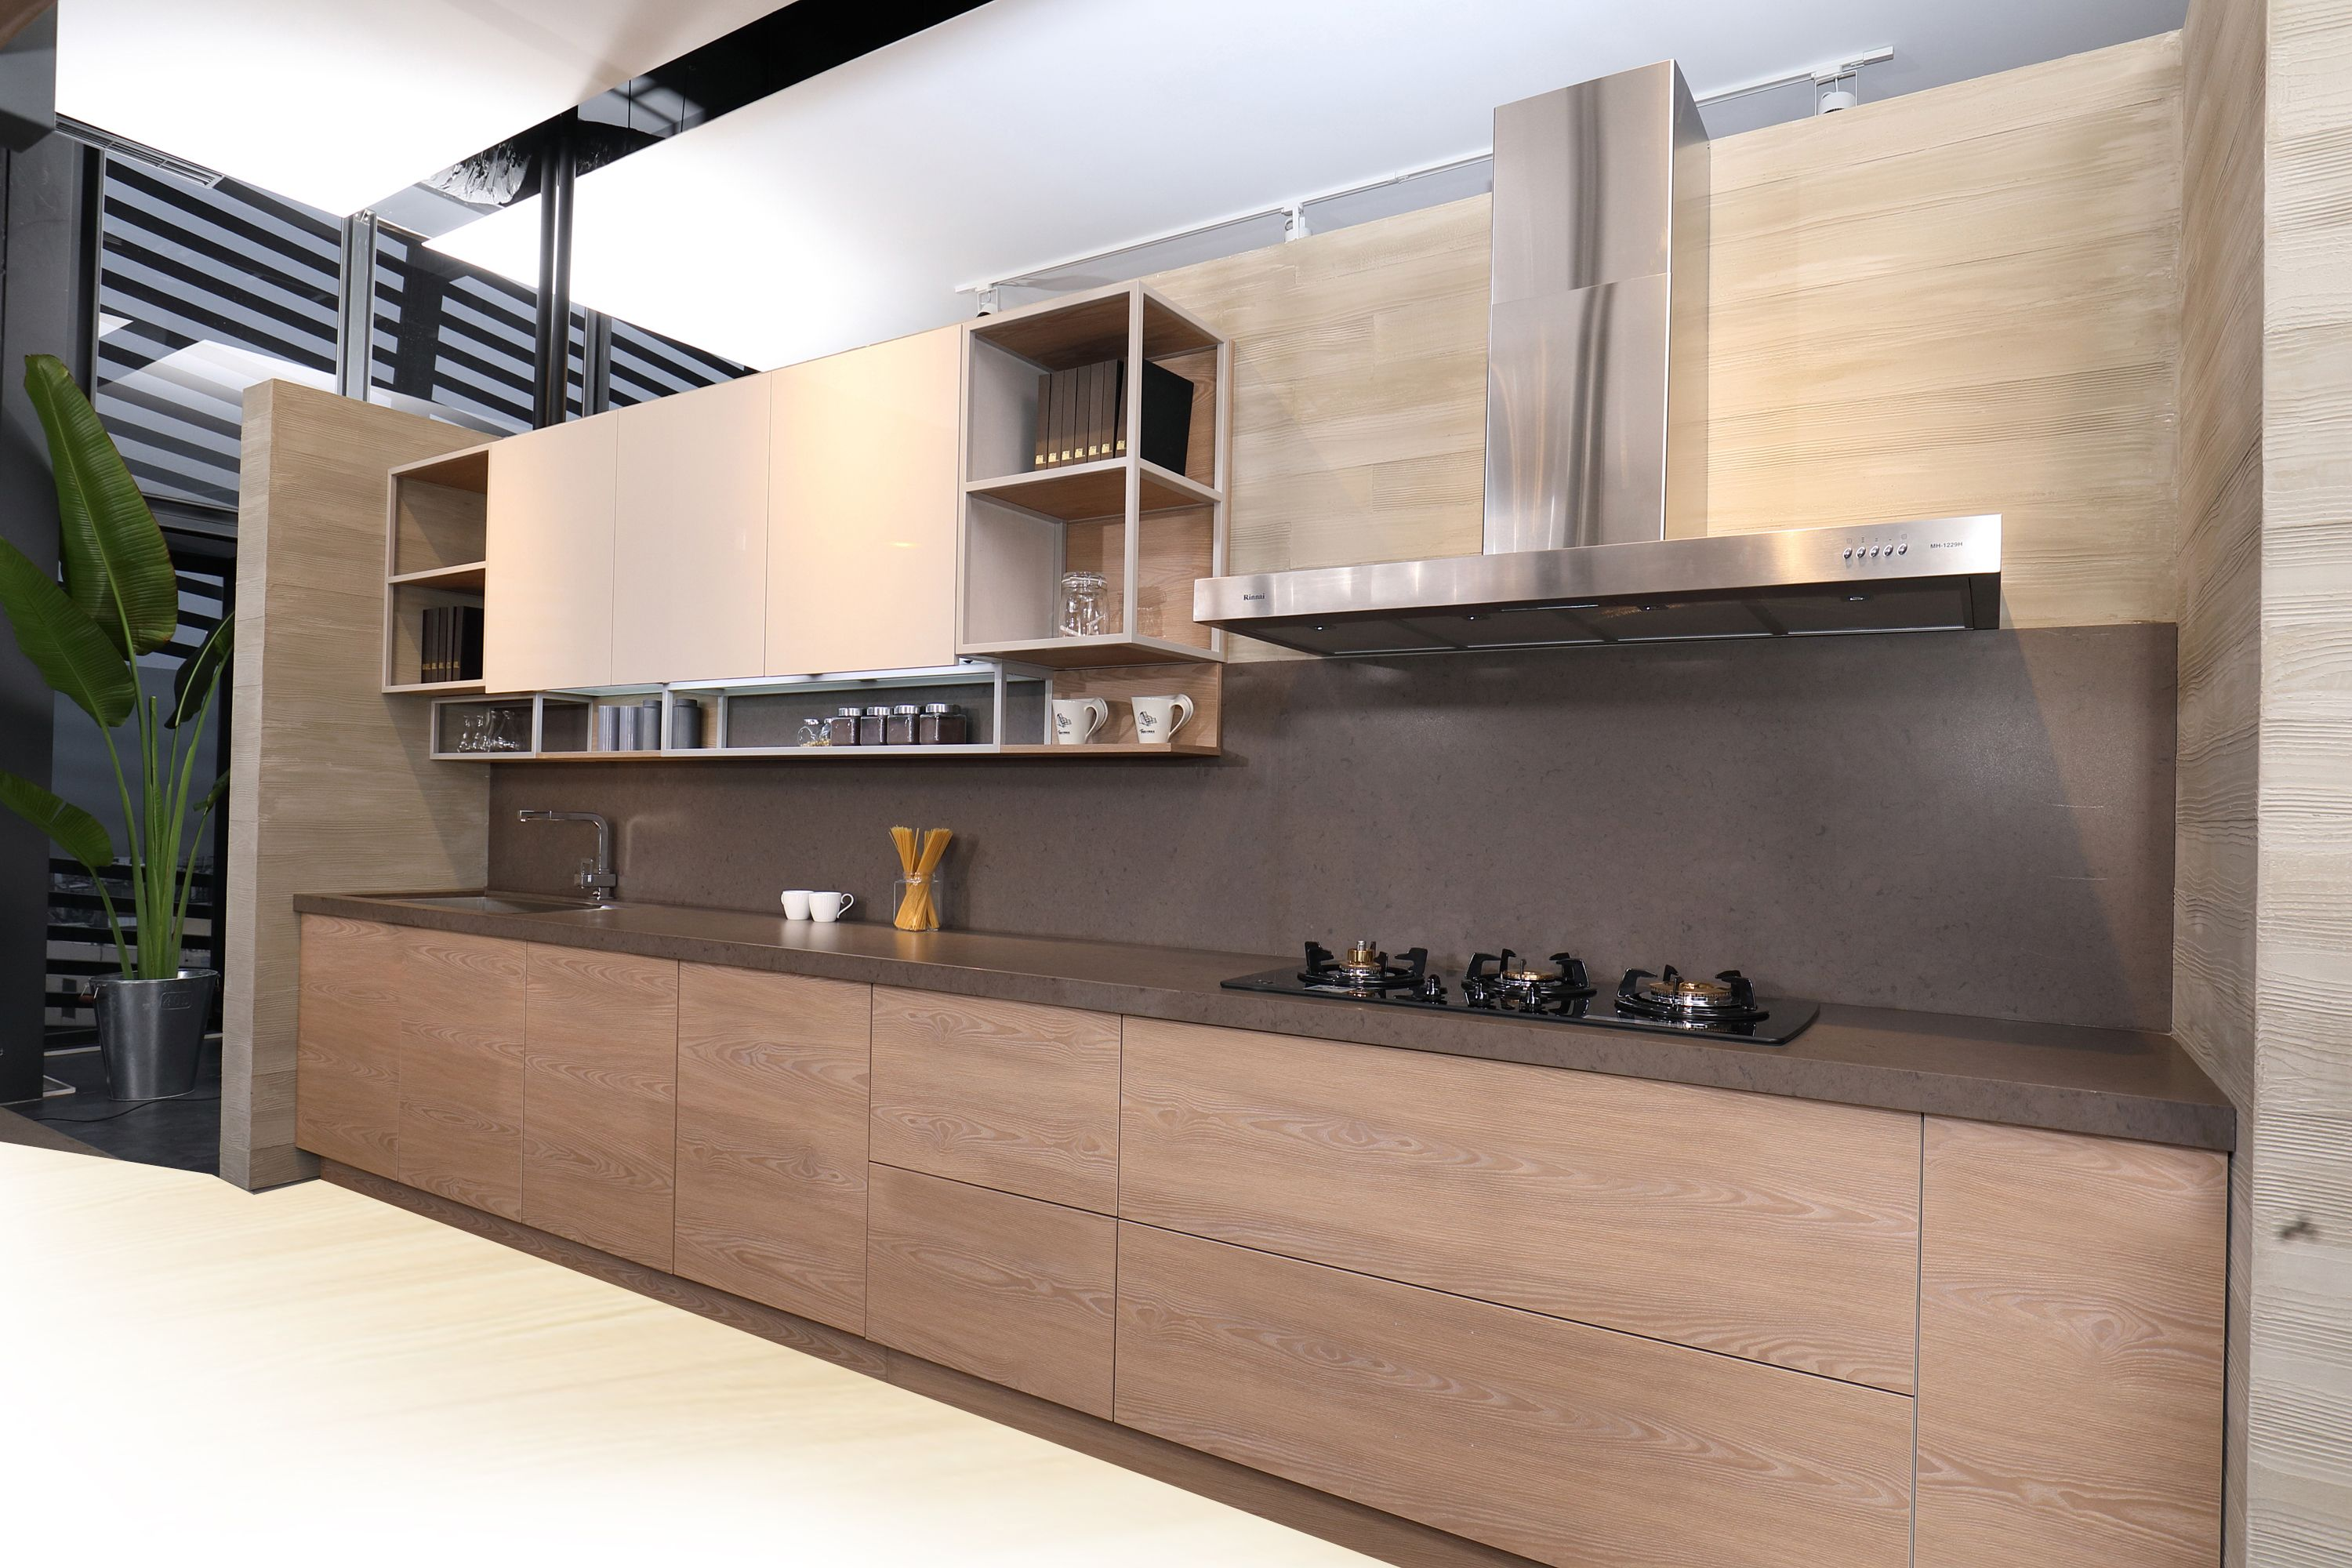 Contemporary European Kitchen Made Possible By The King Slide Simlead System European Kitchens Soft Close Drawer Slides Drawer Slides